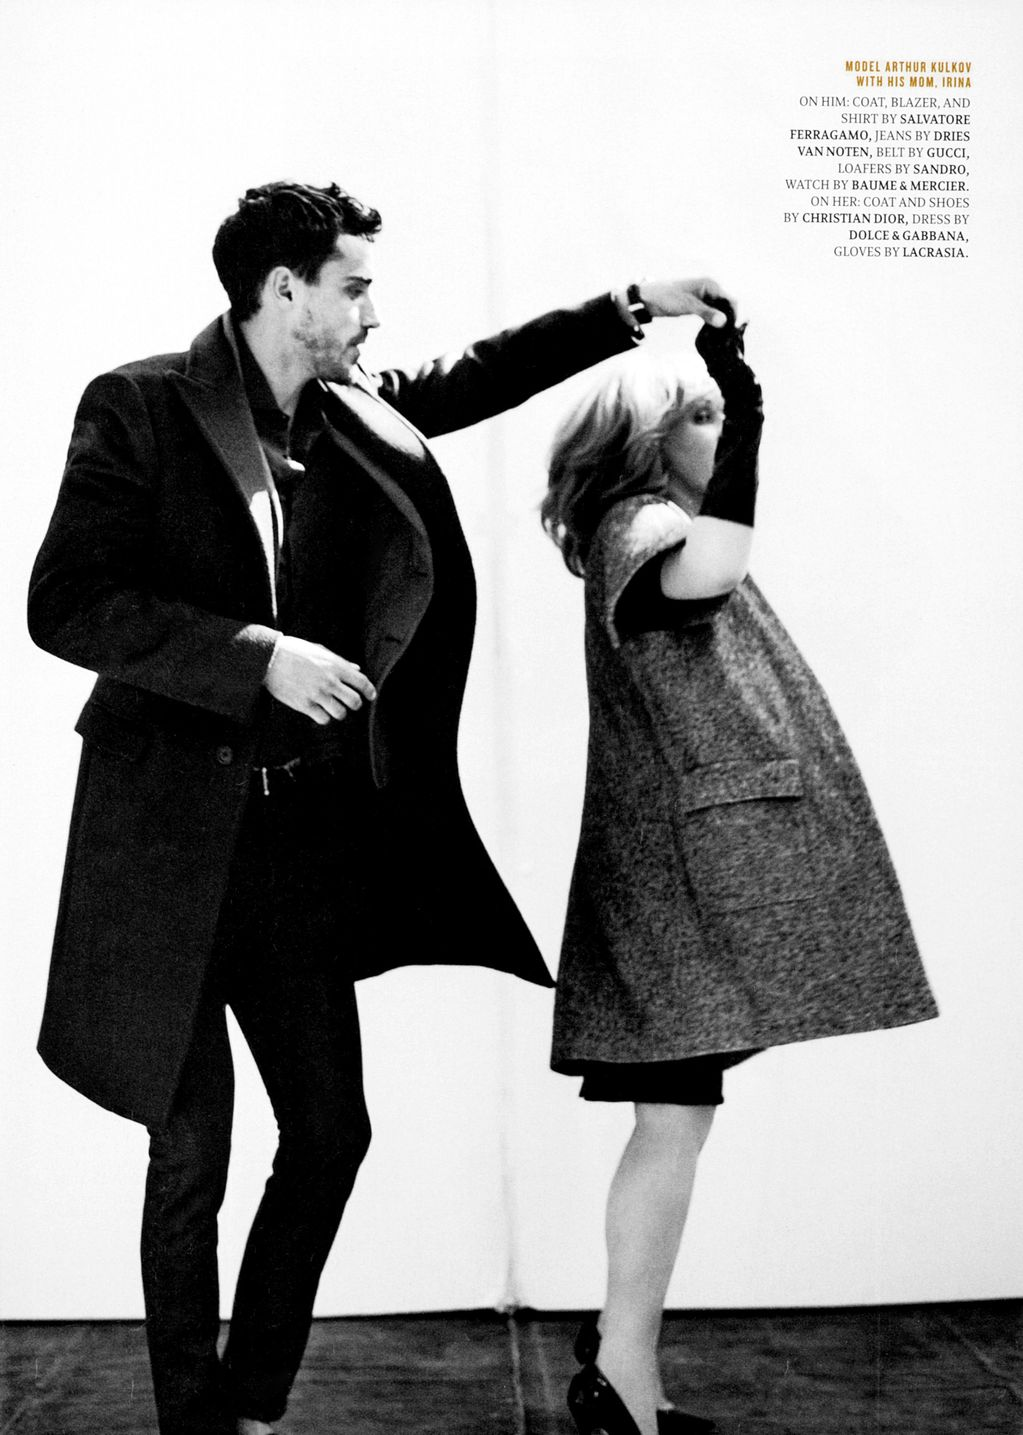 Ben Hill, Will Chalker & Others Shoot with their Friends & Family for Details' August 2012 Issue